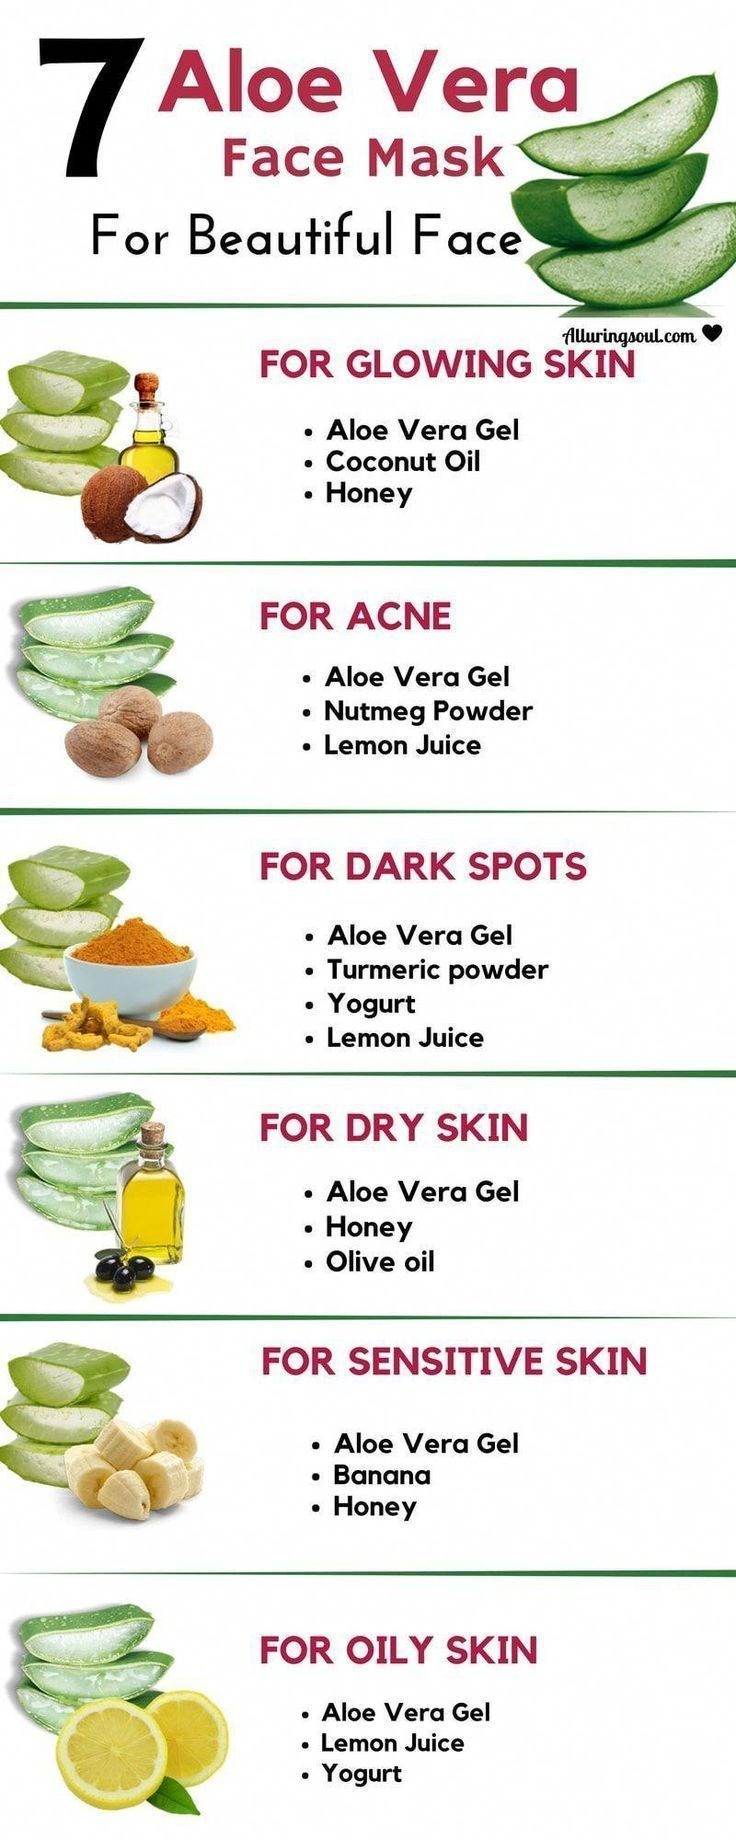 Beauty Tips In Hindi Tips To Get Healthy Skin How To Take Care Of Skin Natur Beauty Aloe Vera For Face Aloe Vera Gel Face Aloe Vera Face Mask